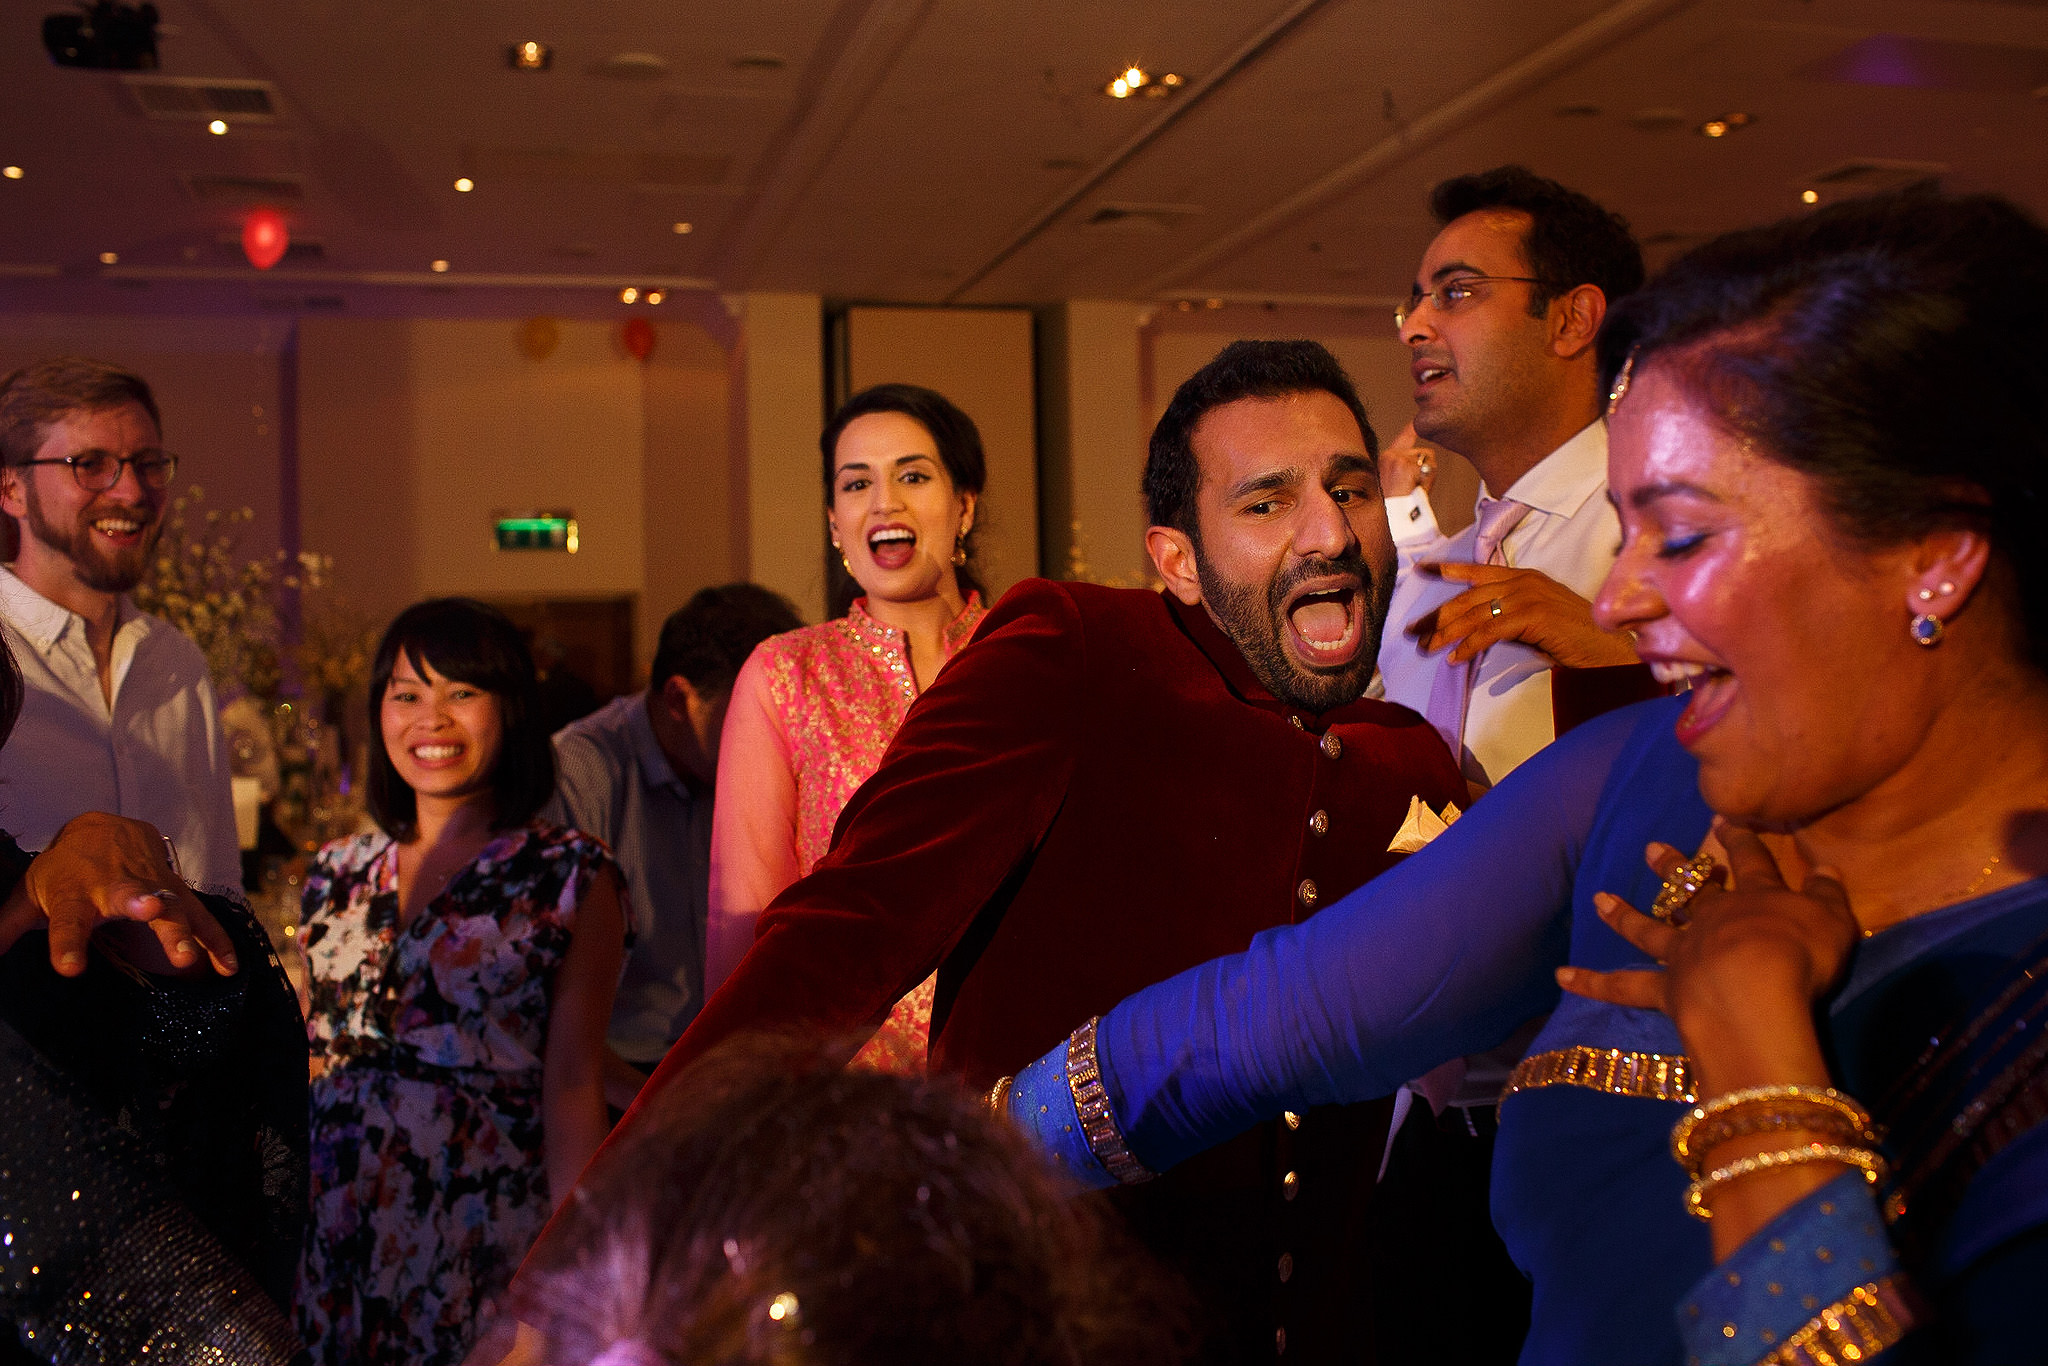 Guests dancing at Indian wedding reception